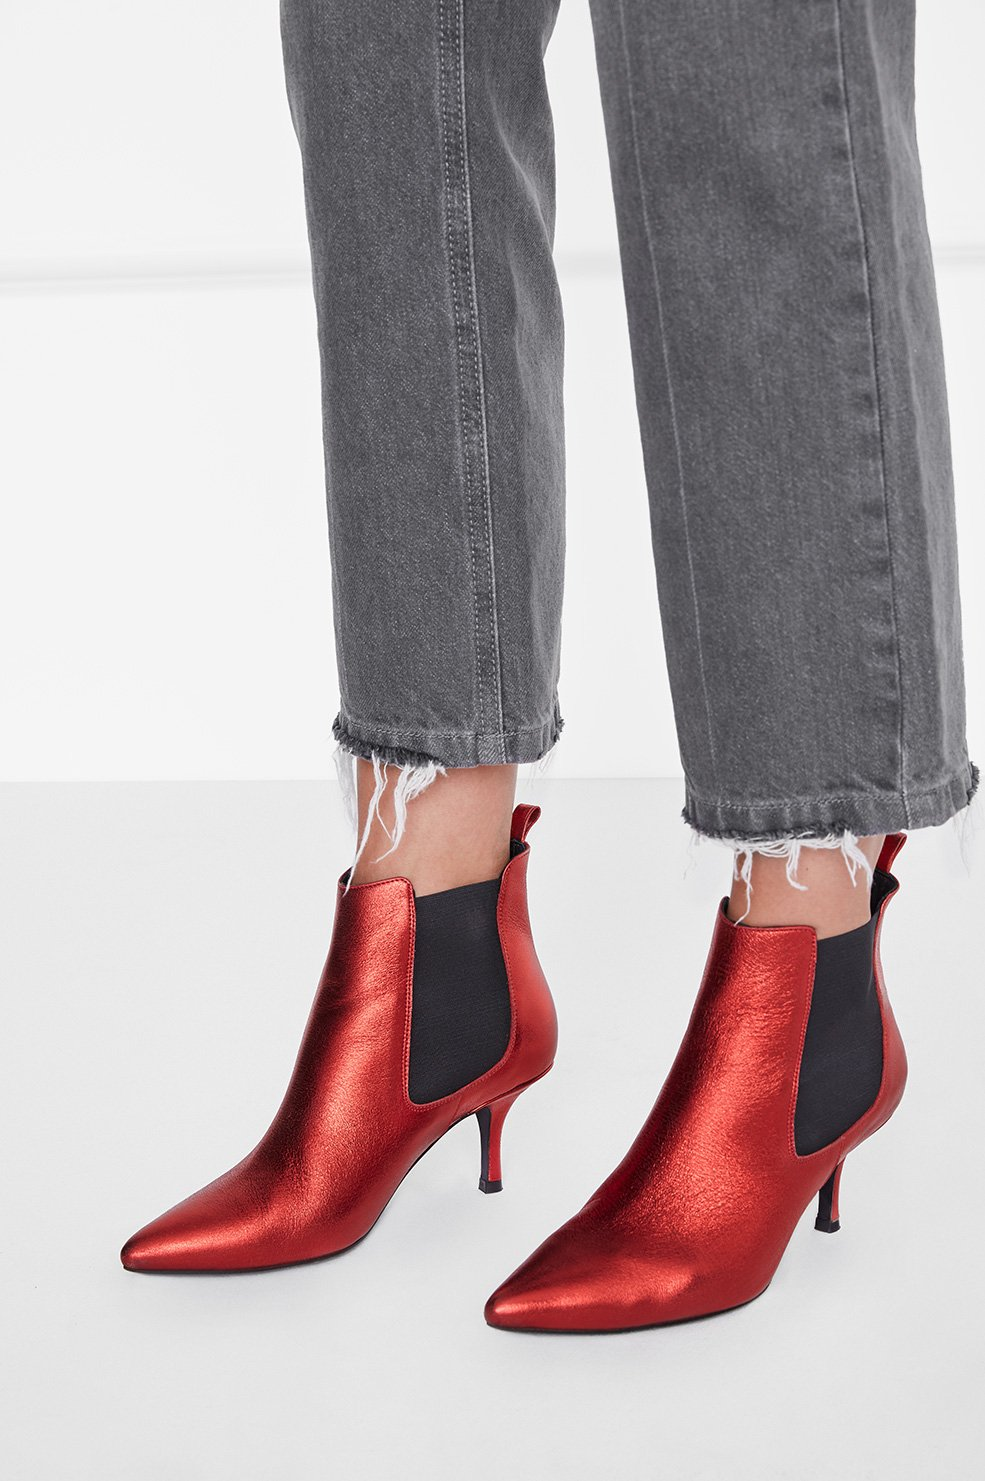 25.-ANINE-BING-STEVIE-BOOTS-RED-METALLIC-AB41-041-05_1978.jpg